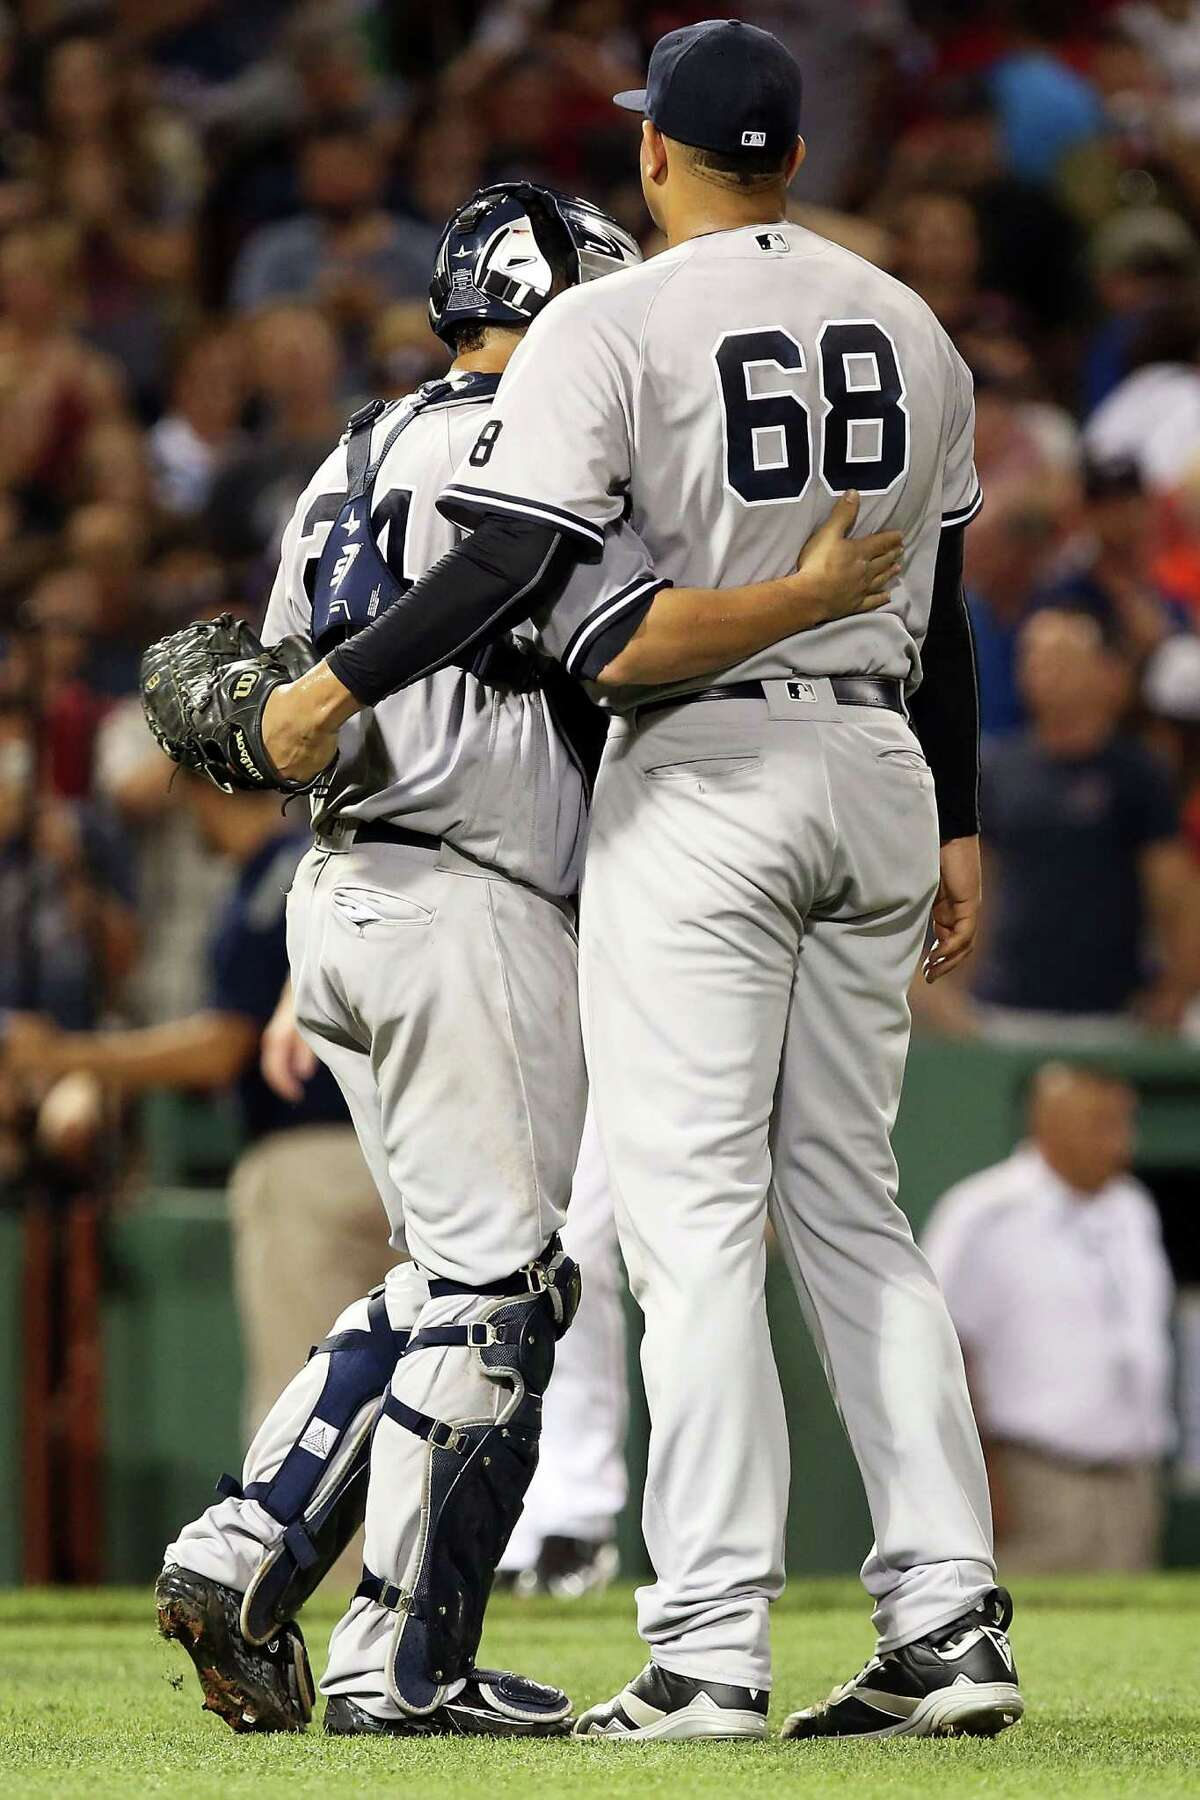 BOSTON, MA - AUGUST 11: Dellin Betances #68 embraces Gary Sanchez #24 of the New York Yankees after their victory over the Boston Red Sox at Fenway Park on August 11, 2016 in Boston, Massachusetts. (Photo by Adam Glanzman/Getty Images) ORG XMIT: 607683327